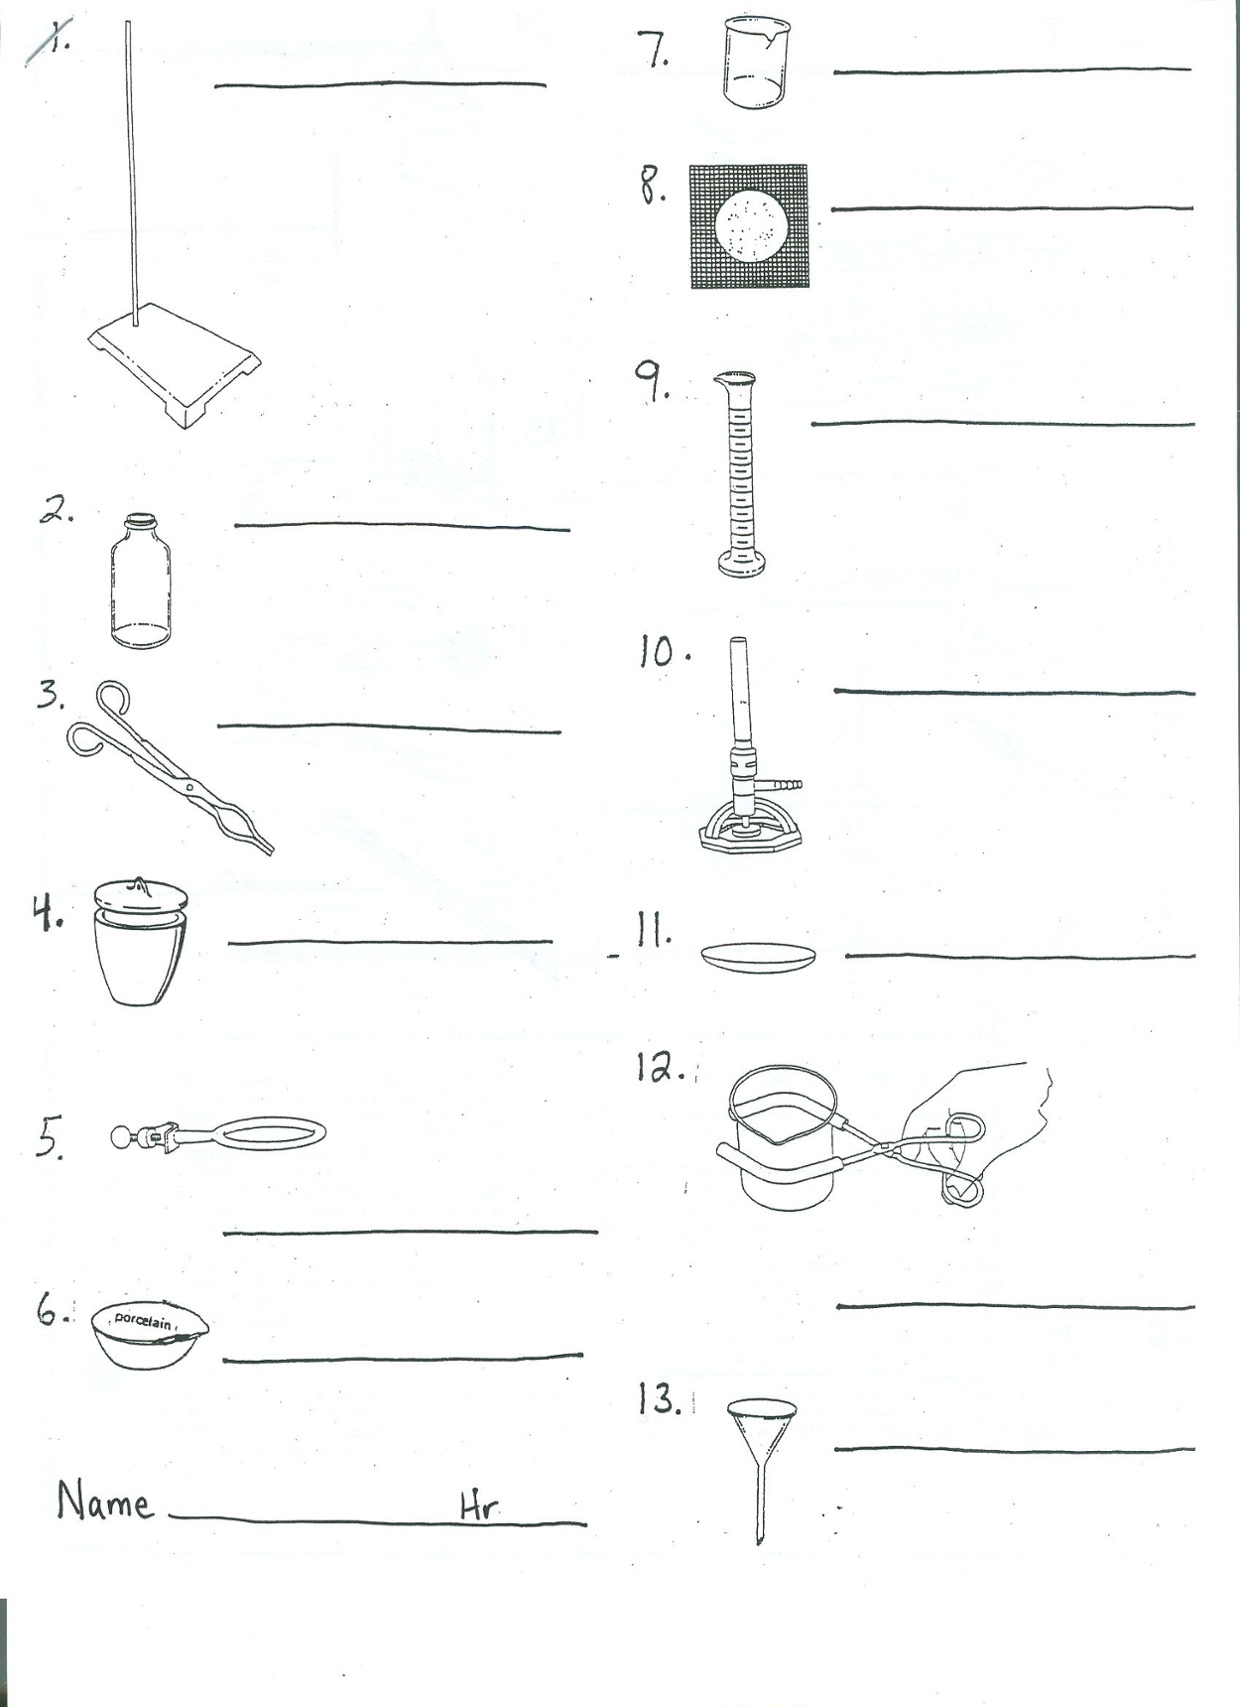 Science Lab Equipment Worksheet | Worksheet